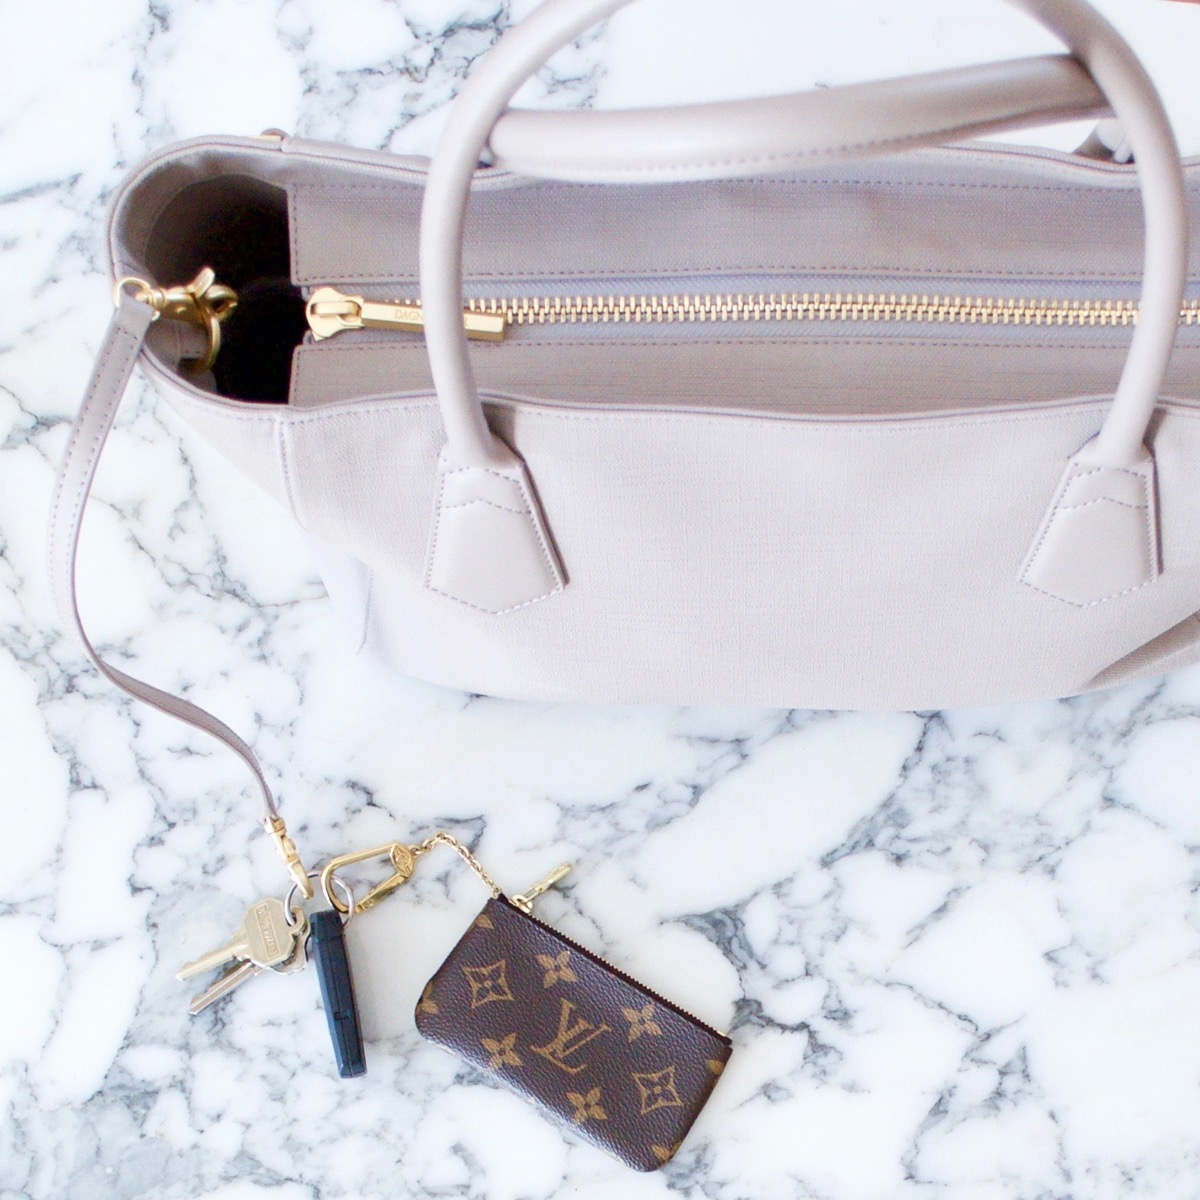 Upgrade your bag with a Dagne Dover Tote